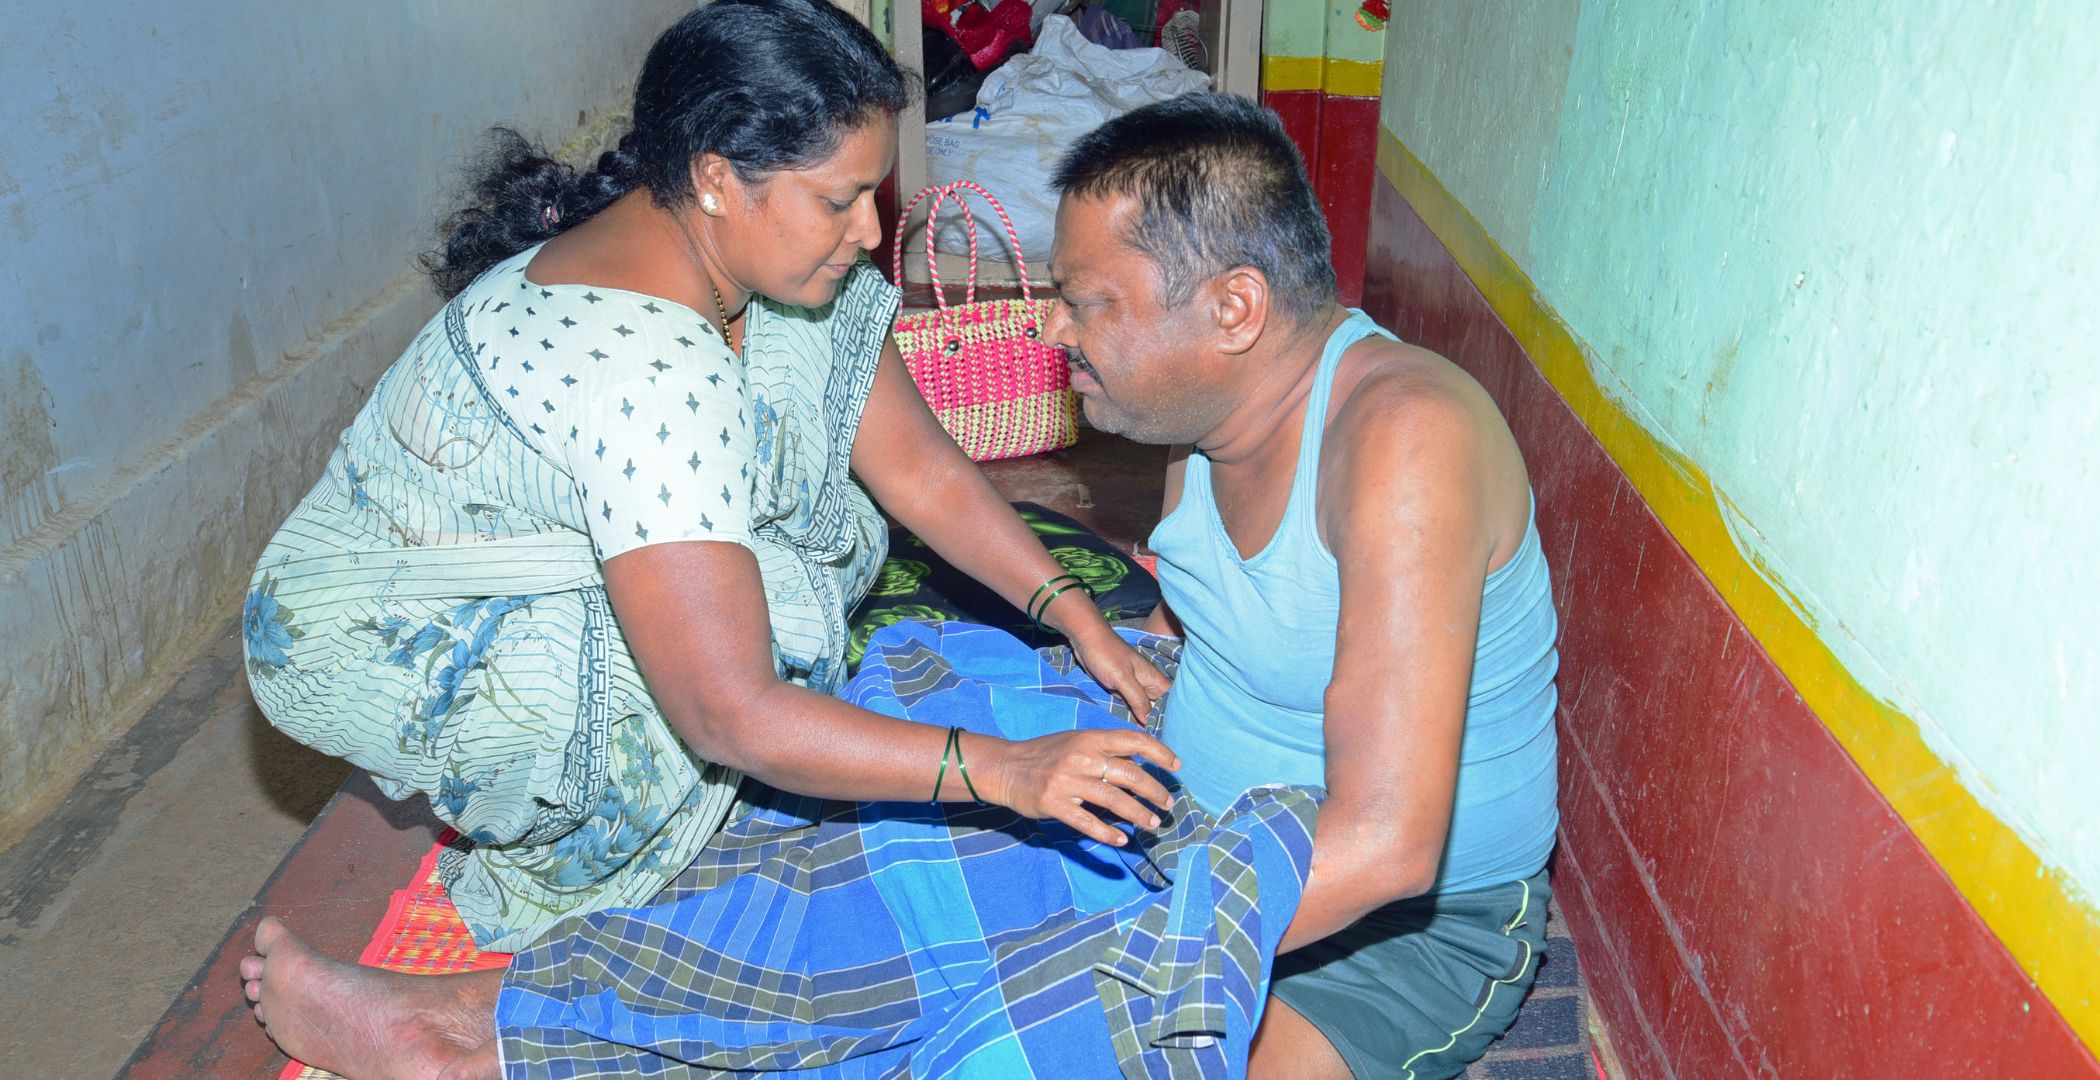 Woman and man sitting on the floor inside: woman caring for her husband